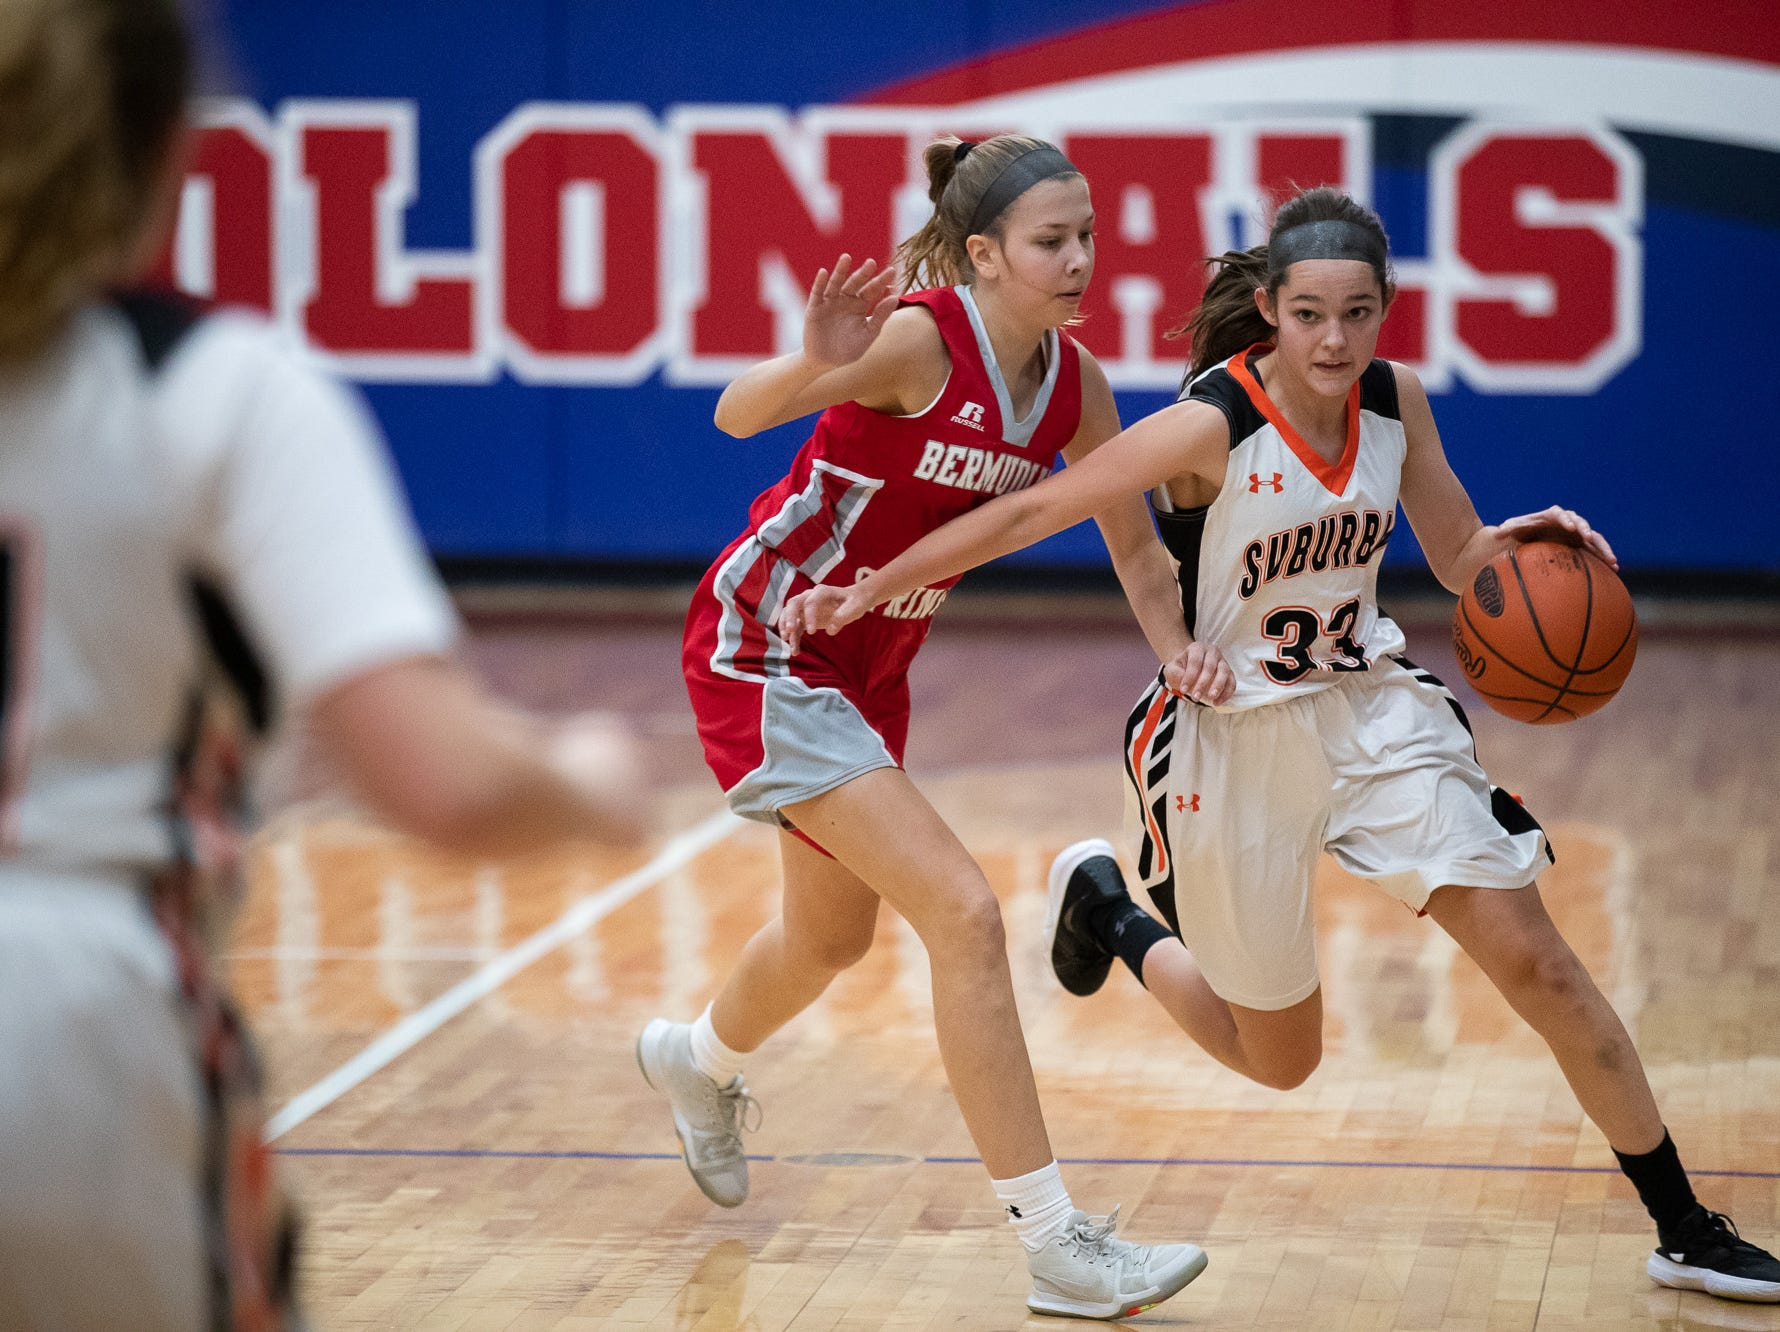 York Suburban's Brooke Sargen (33) races down the court during the consolation game between Bermudian Springs and York Suburban during the New Oxford Girls Basketball Tip-Off Tournament, Saturday, Dec. 8, 2018, in New Oxford. The Bermudian Springs Lady Eagles defeated the York Suburban Lady Trojans 60-58.